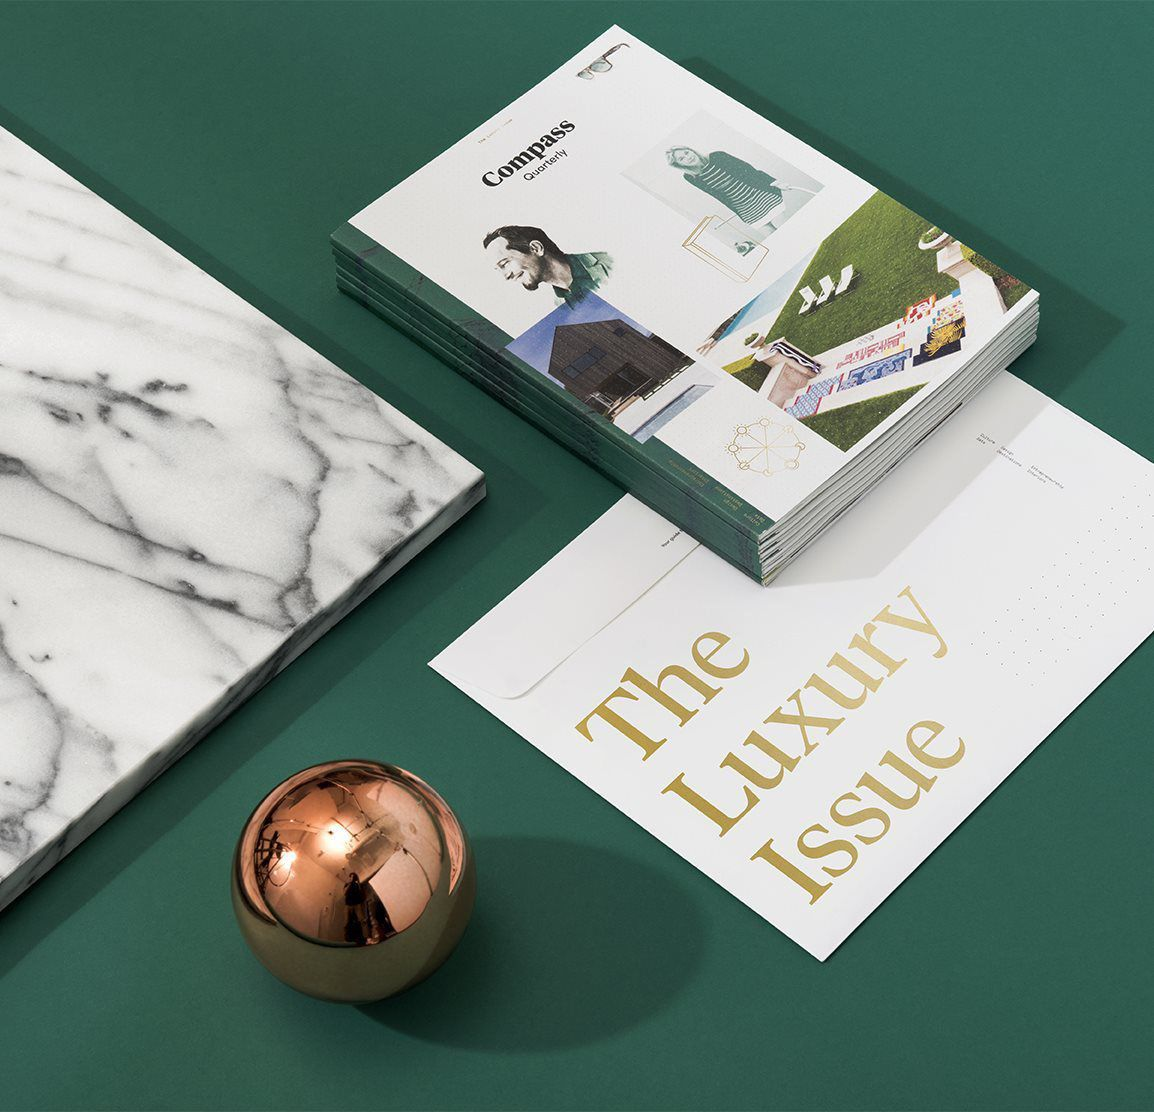 The Luxury issue